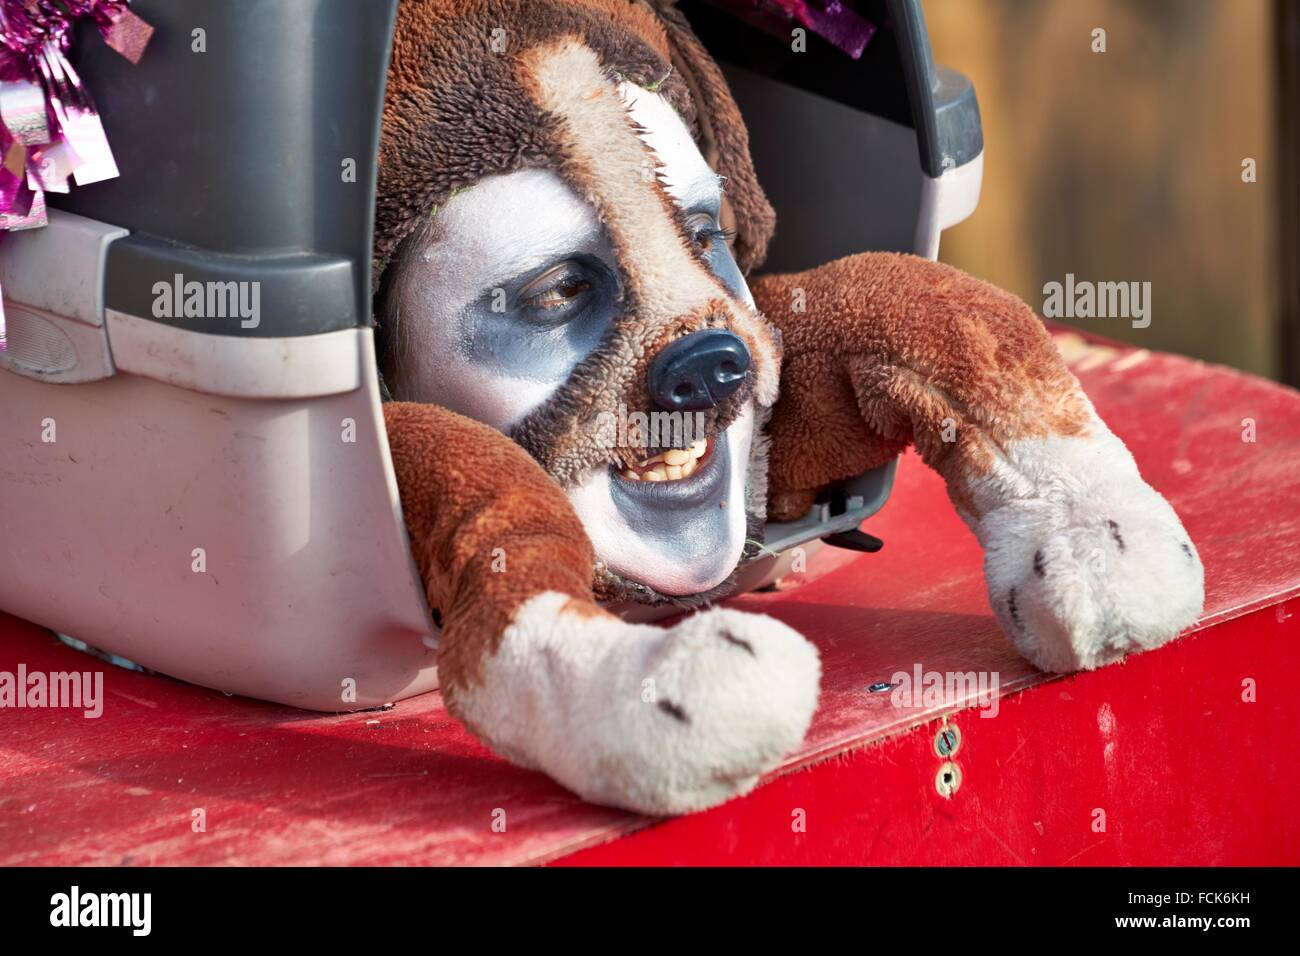 Man in dog disguise, Venice carnival, Venice, Italy - Stock Image